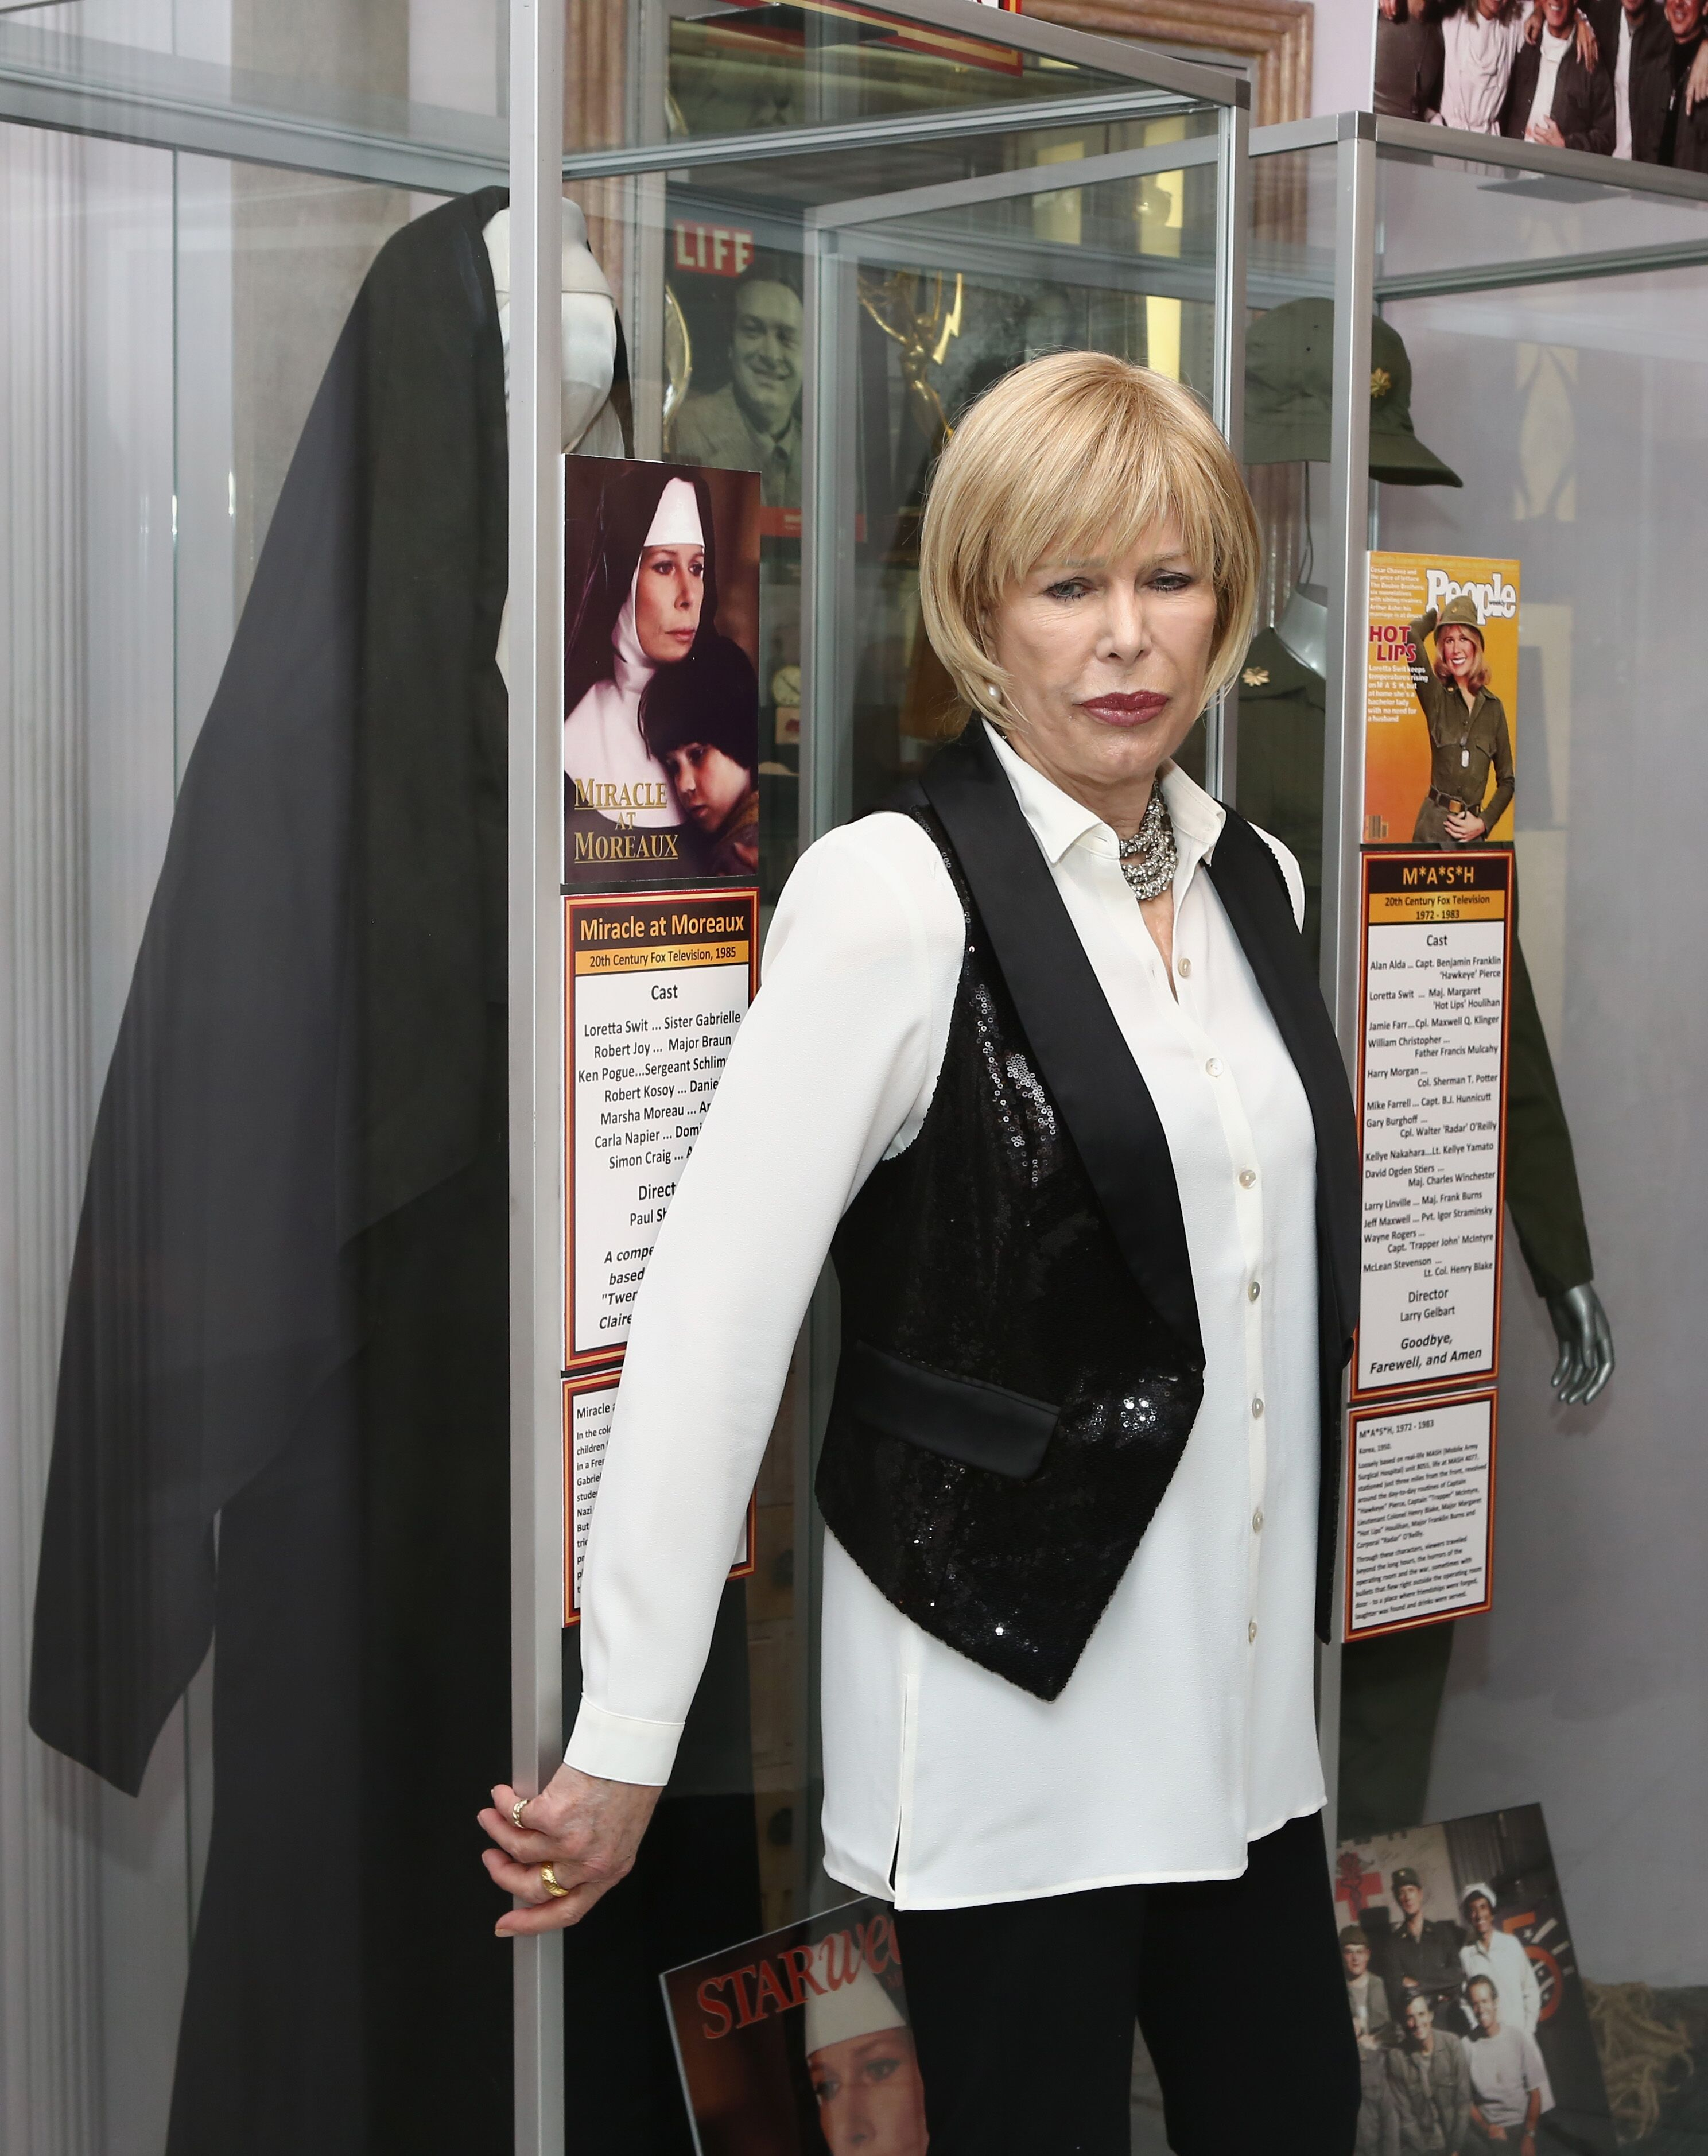 """Loretta Swit at The Hollywood Museum Hosts Exhibit Unveiling and Book Launch with Loretta Swit for """"Switheart"""" at The Hollywood Museum in Hollywood, California 